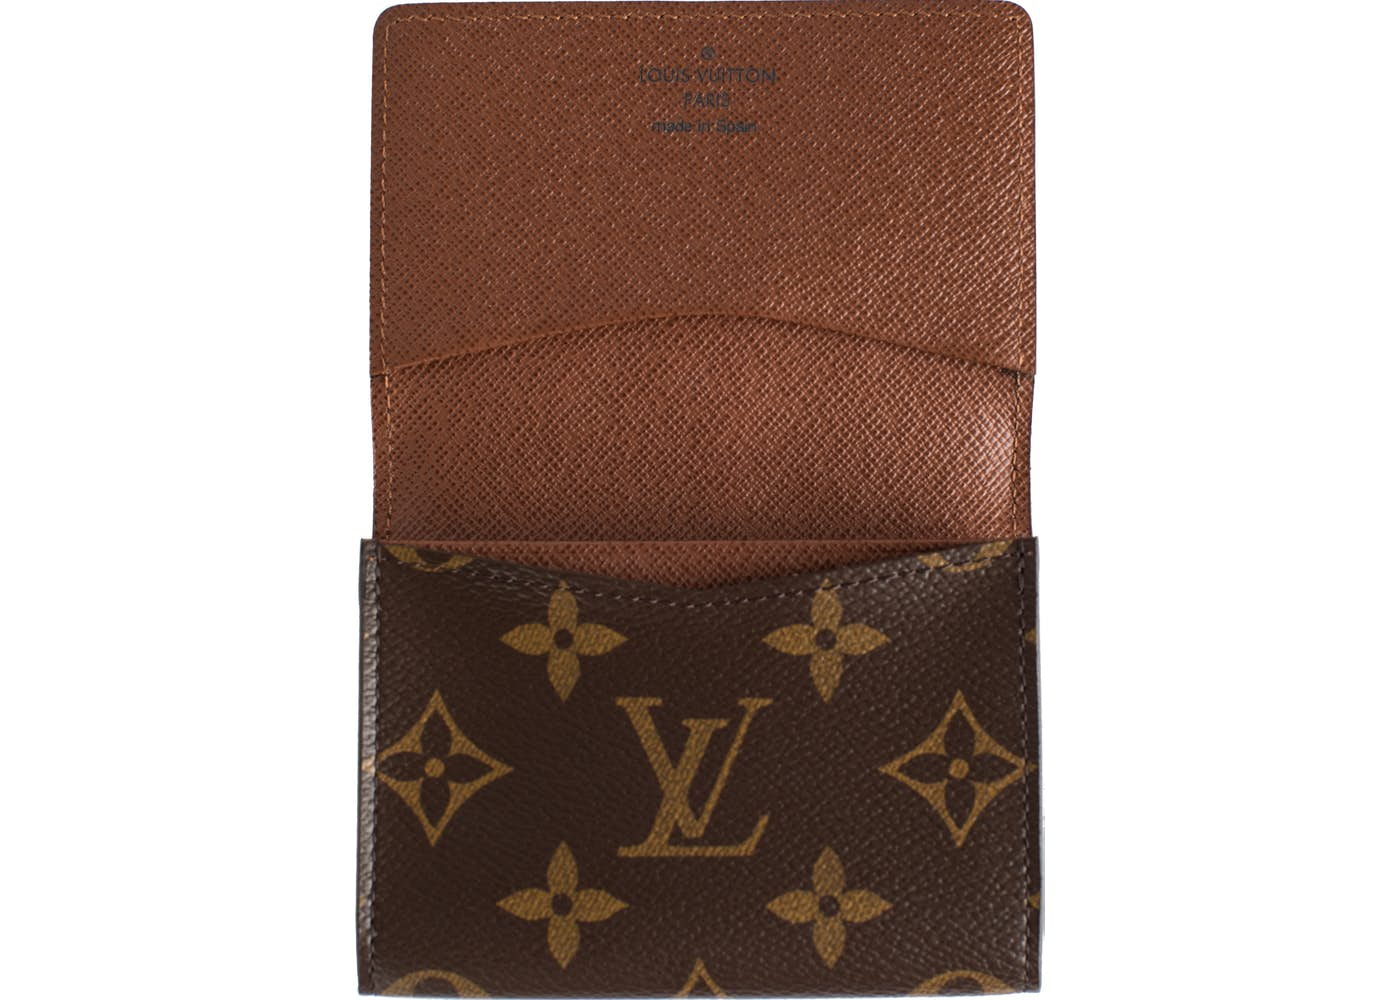 Louis Vuitton Business Card Case Image collections - Business Card ...